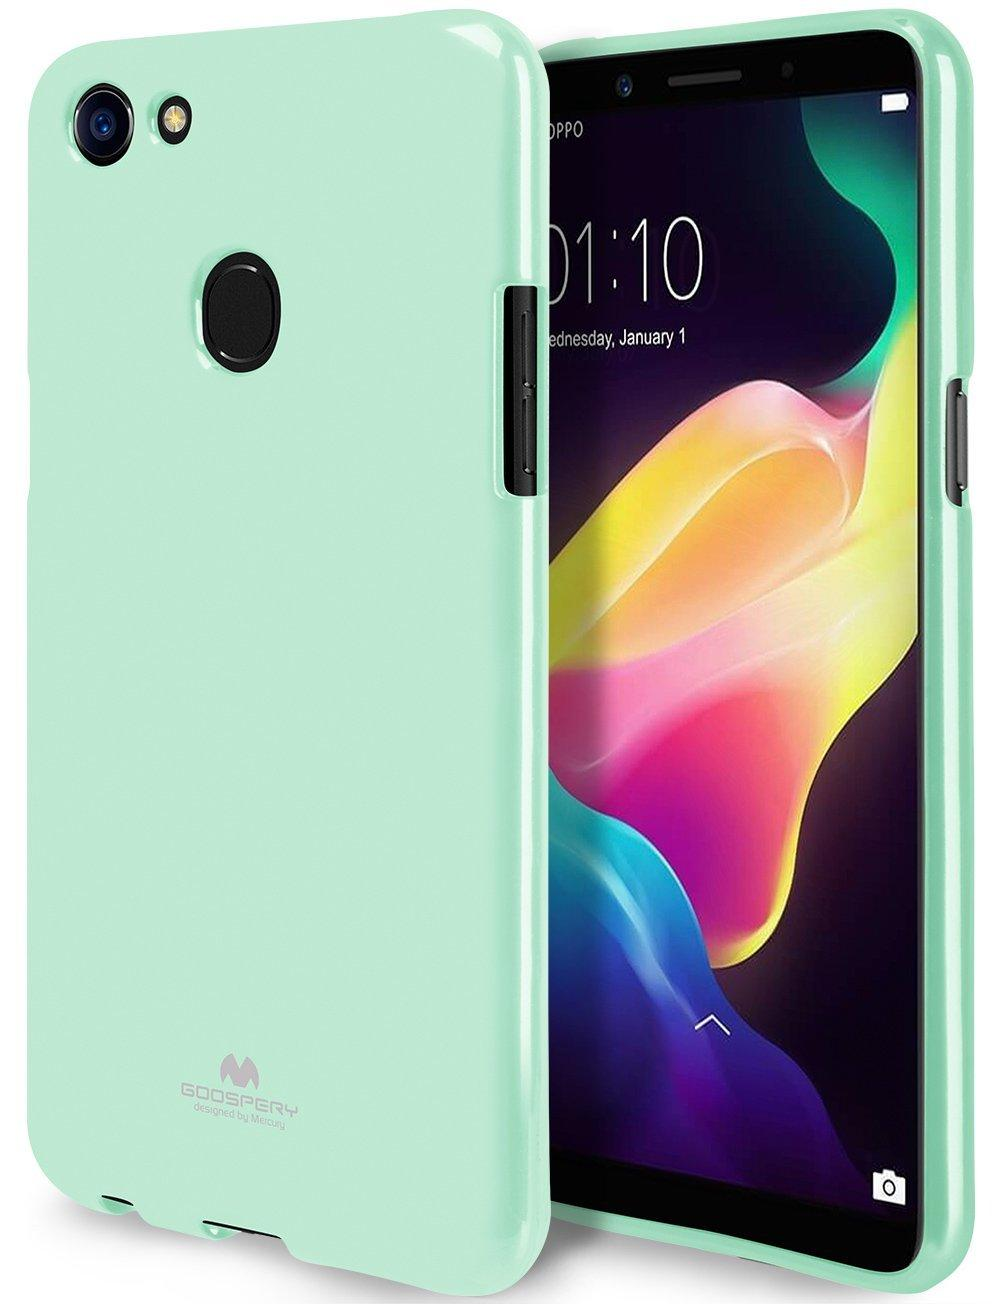 Fitur Mercury Jelly Soft Case For Apple Iphone X Transparent Dan Goospery Feeling Mint Oppo F5